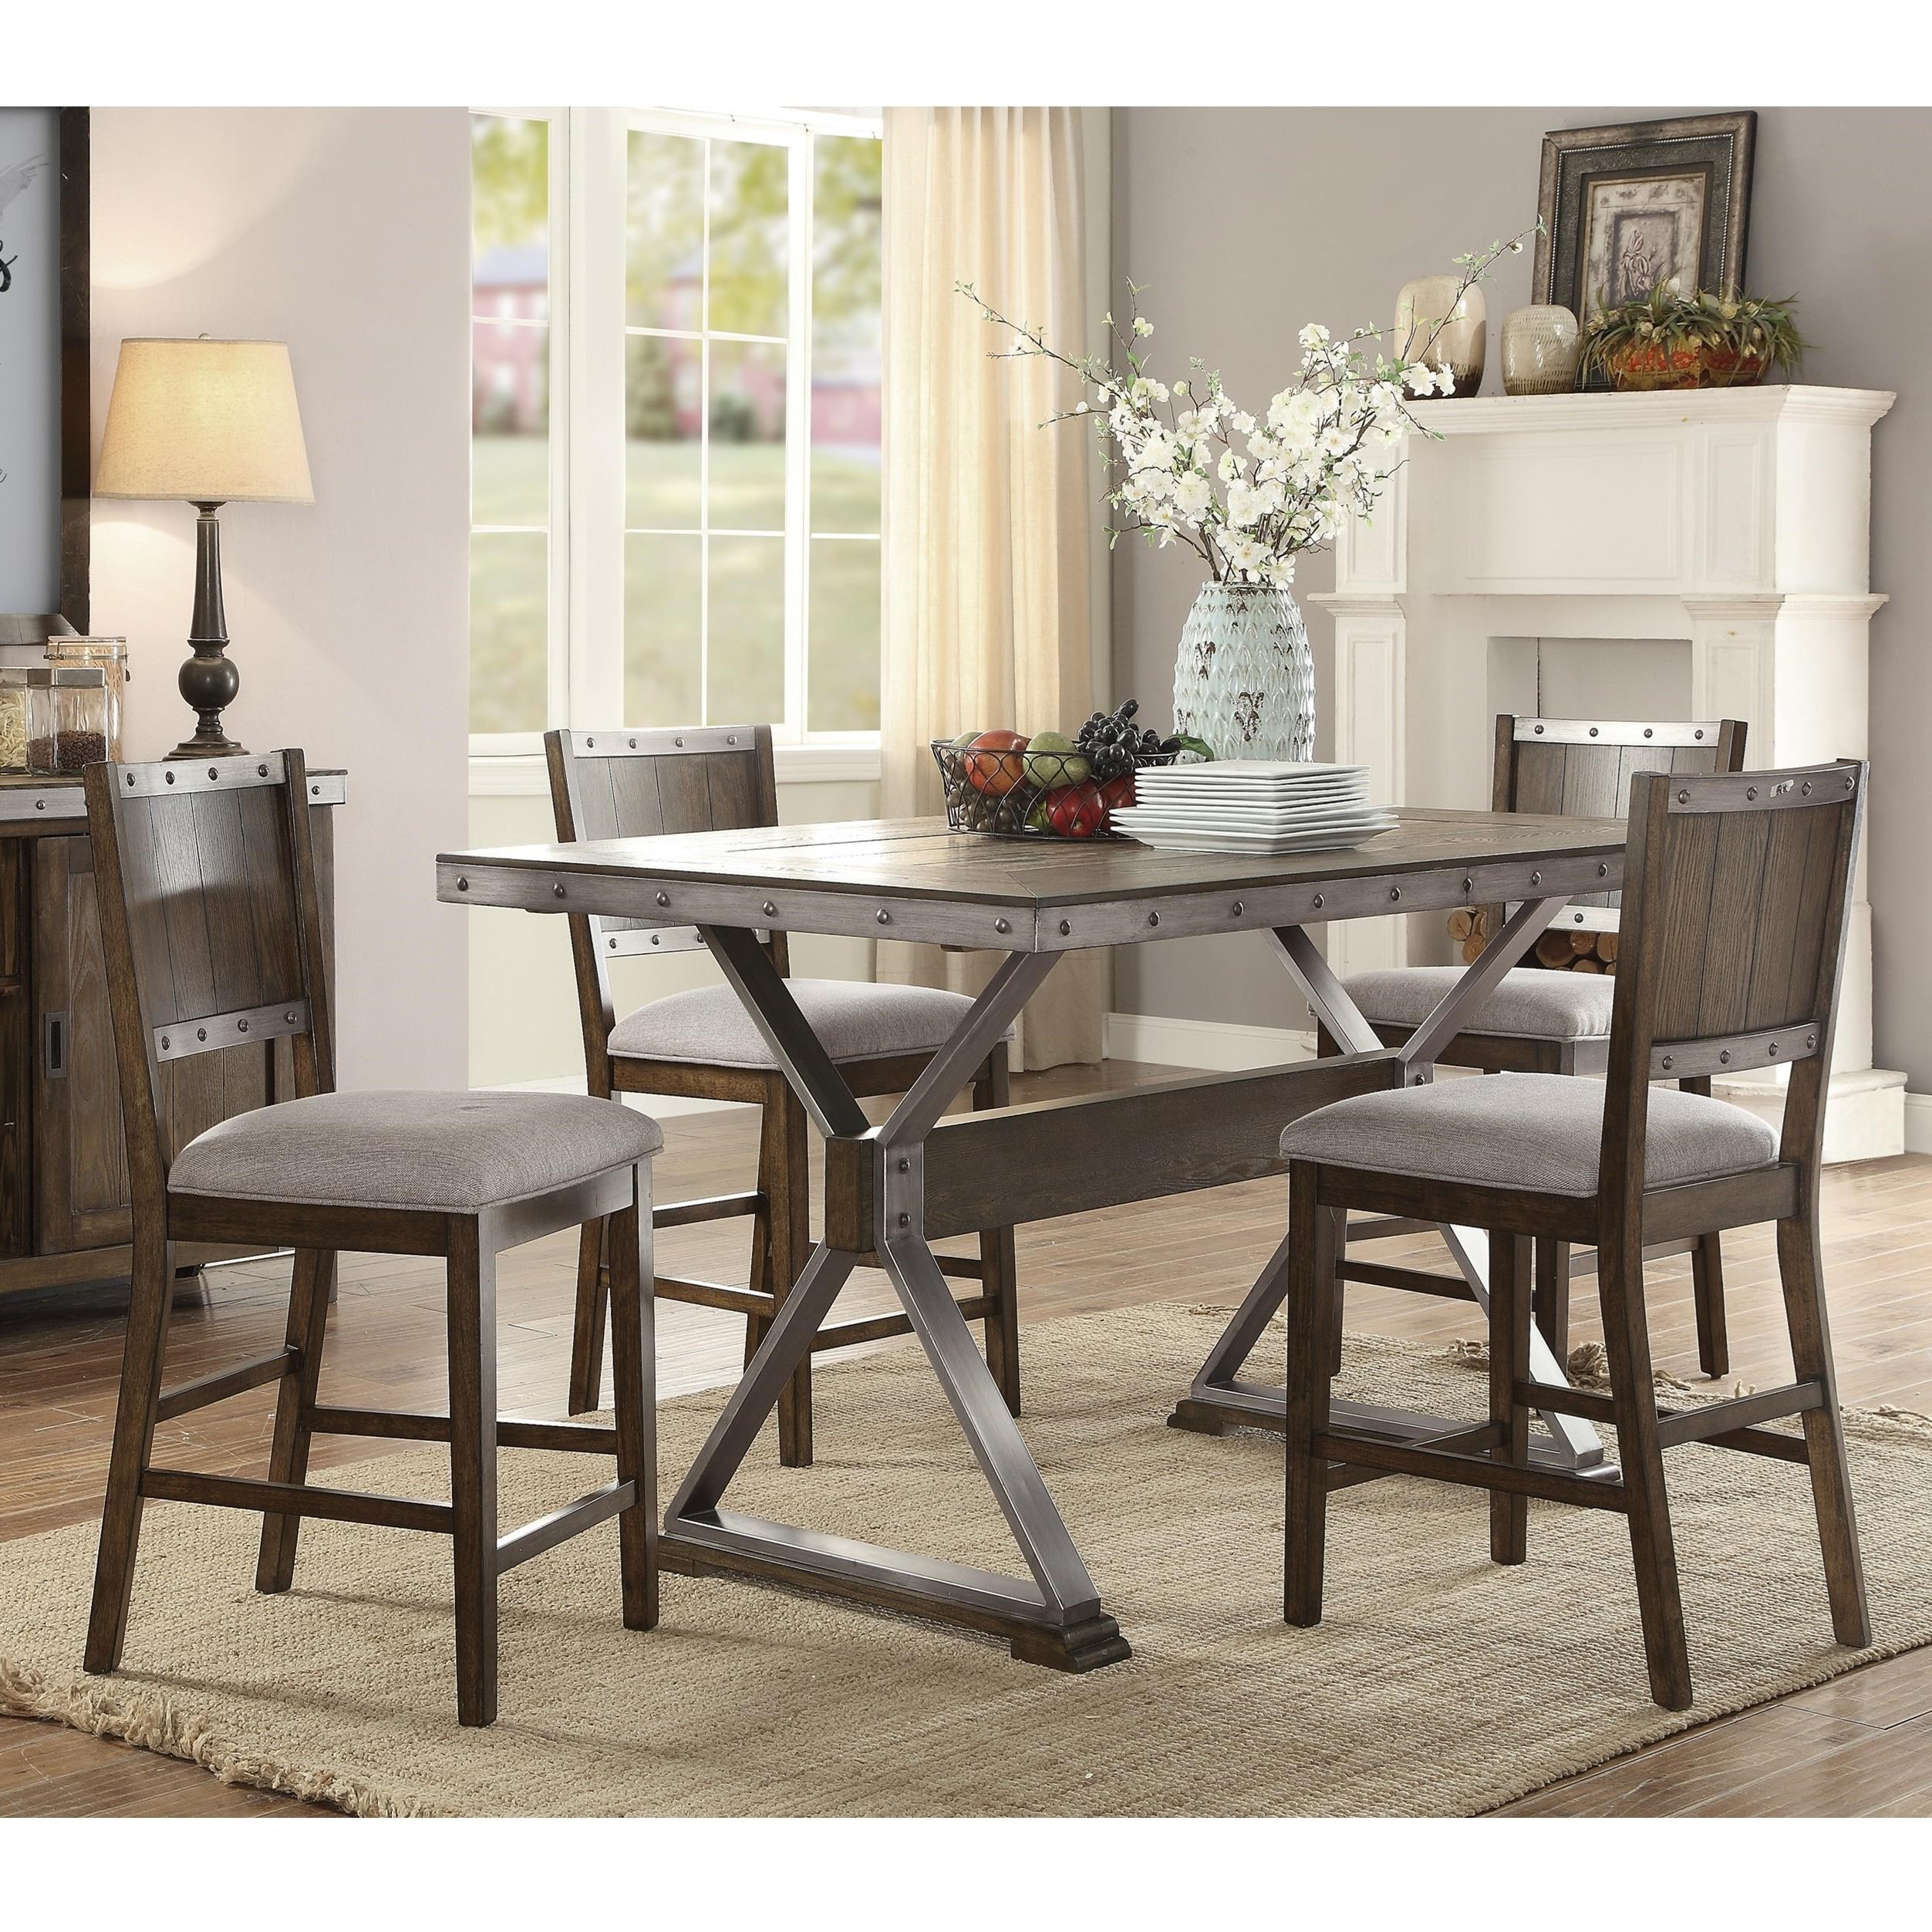 Coaster Beckett Rustic Counter Height Dining Set   Coaster Fine Furniture